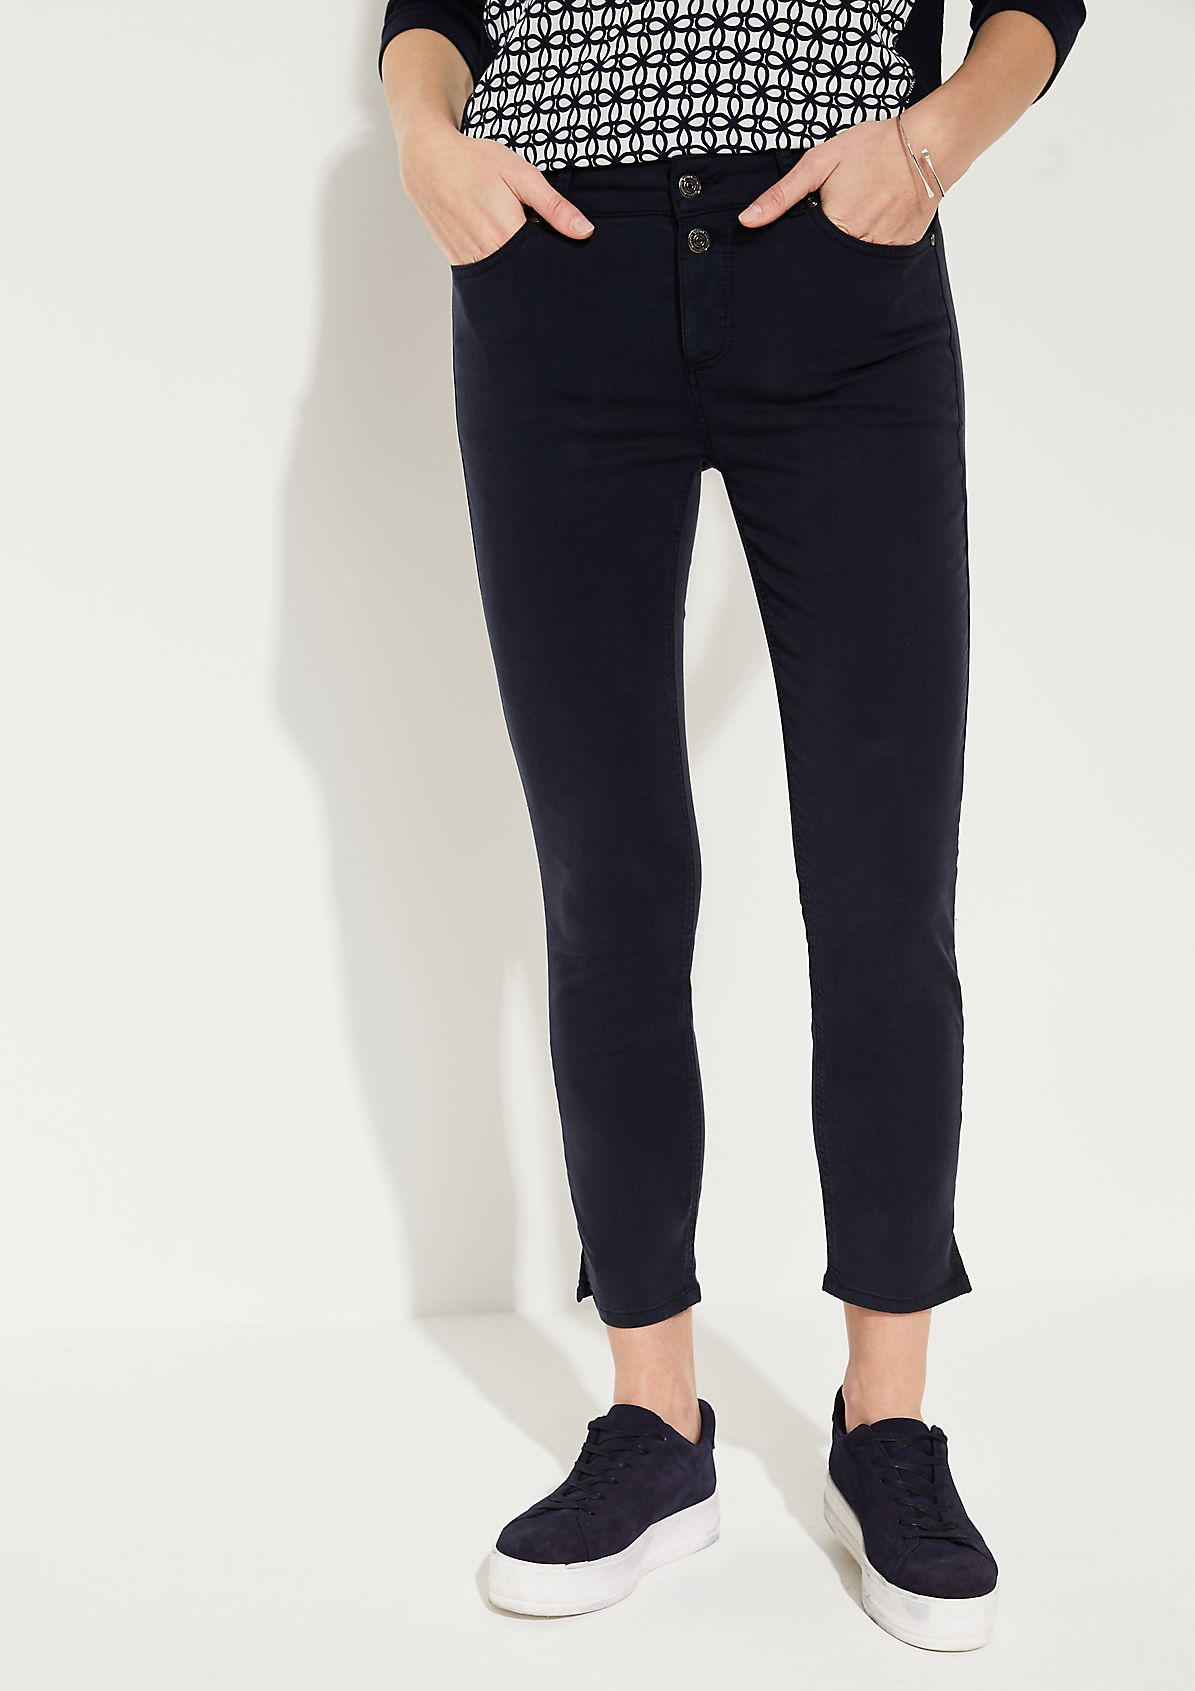 Skinny fit: Skinny fit ankle-length trousers from comma